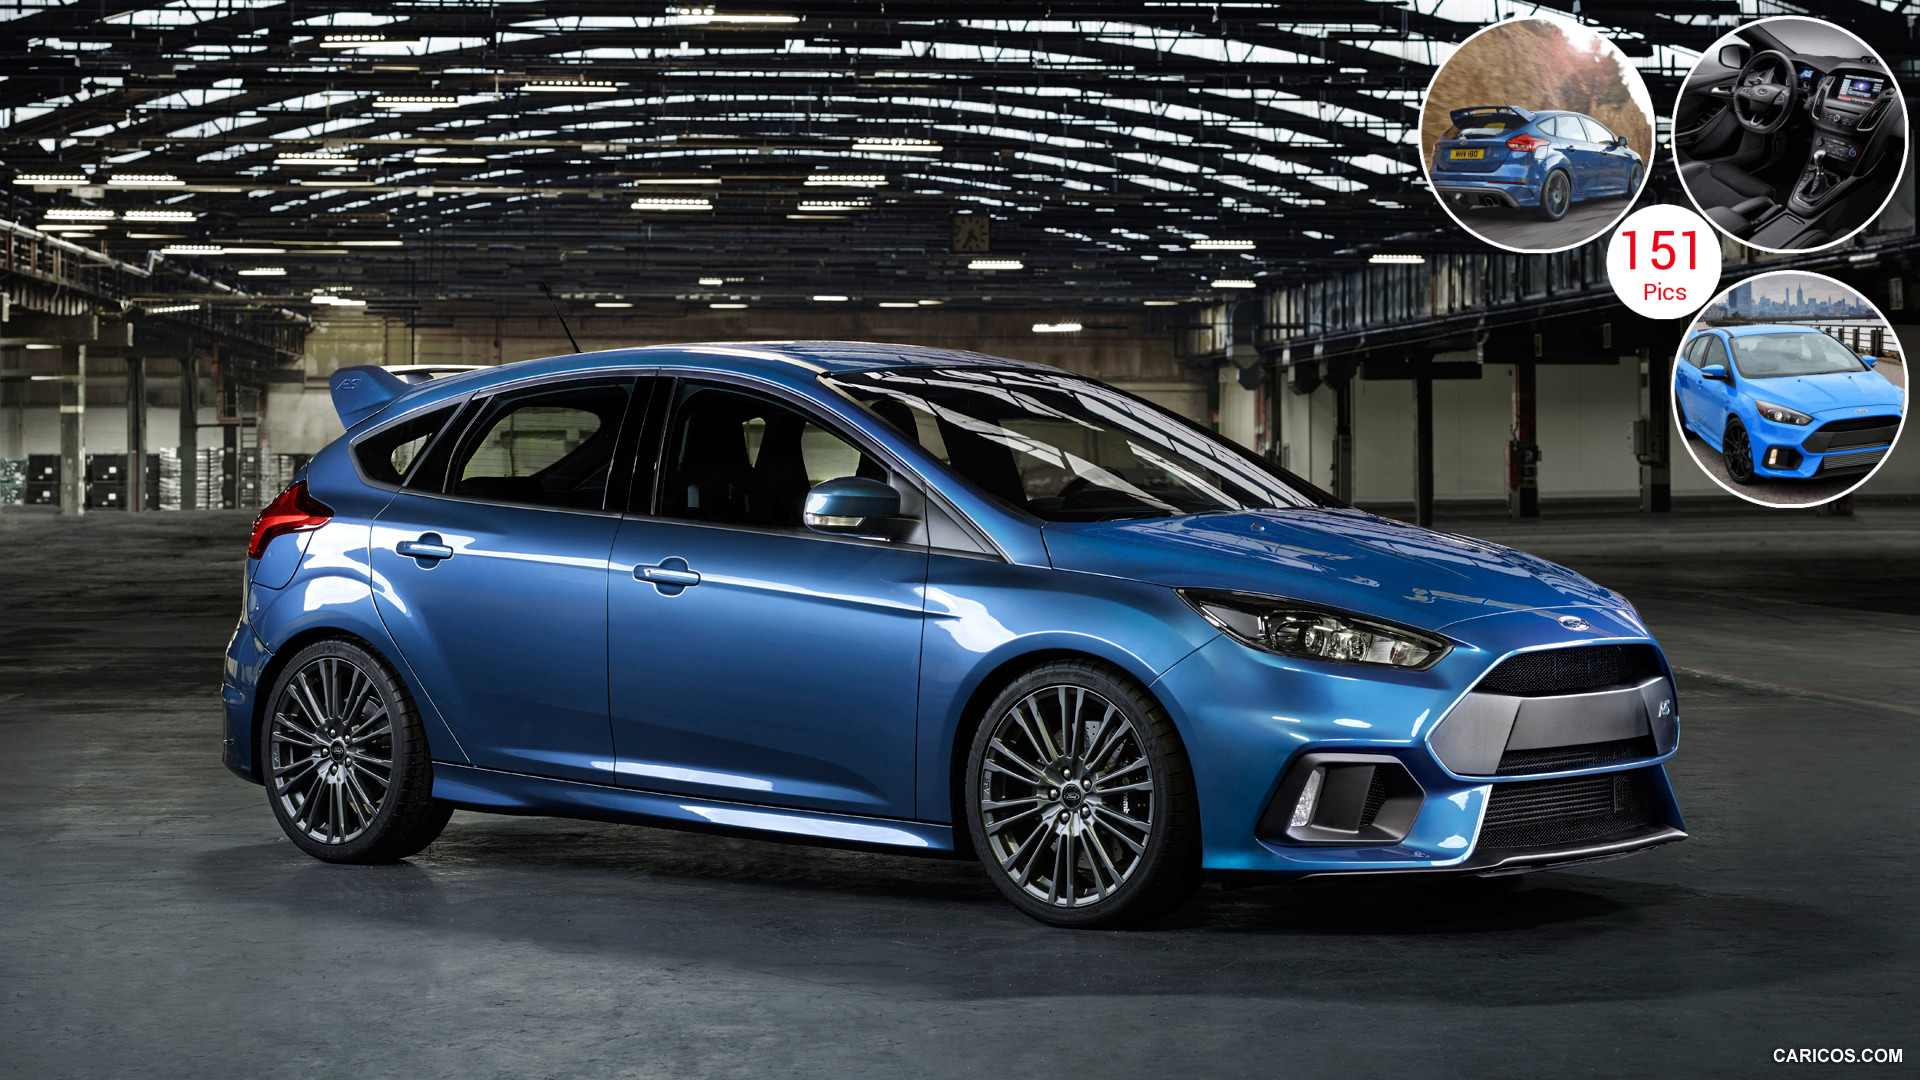 Ford Focus Rs Wallpapers Wallpaper Cave